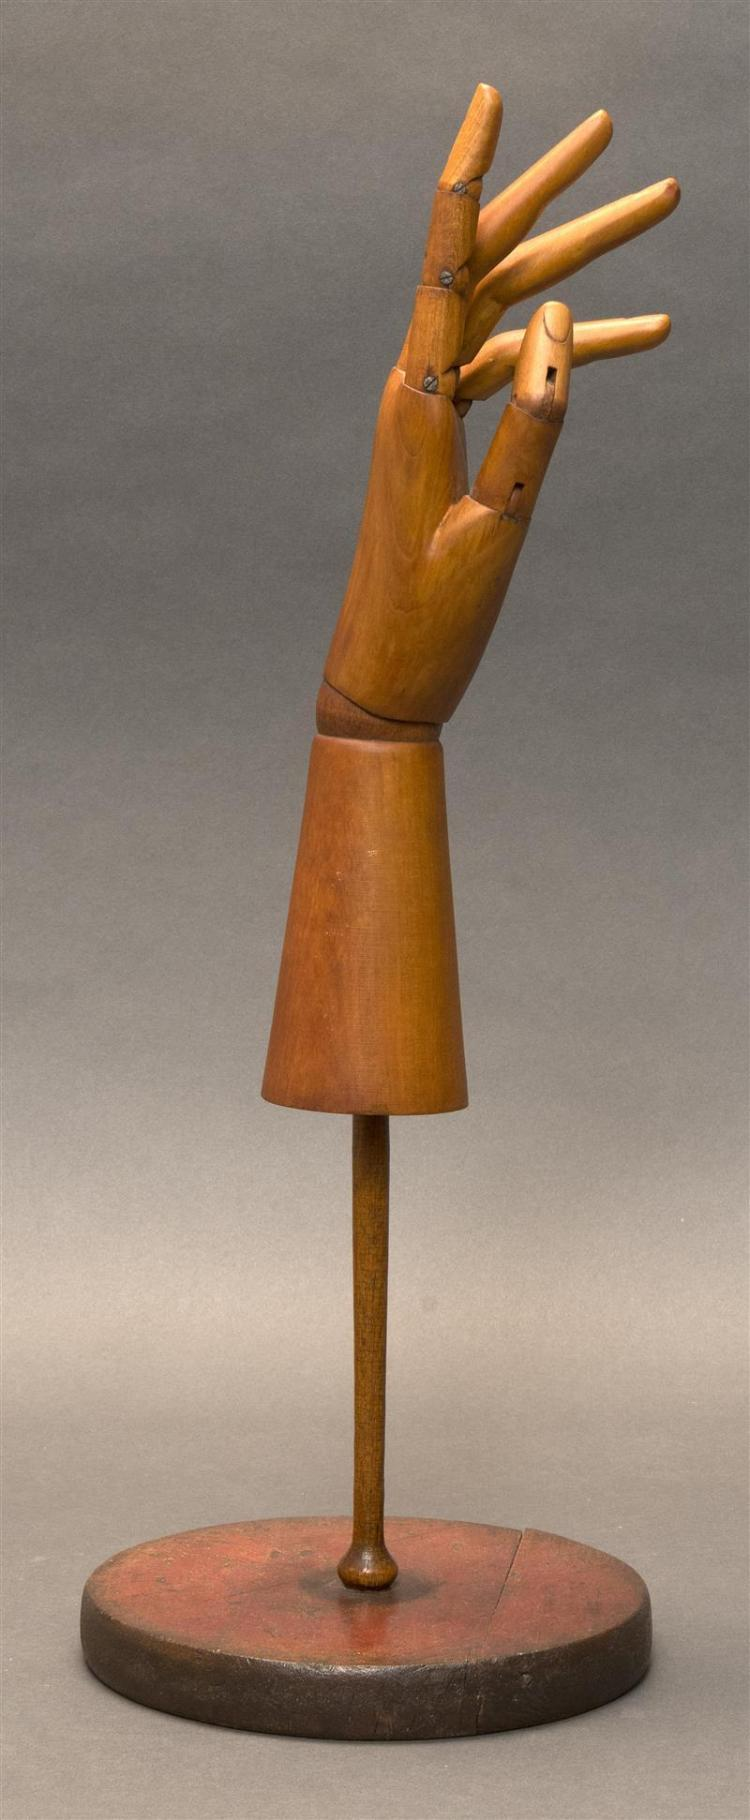 ARTICULATED ARTIST'S WOOD MODEL OF A HAND Fully poseable and on a conical base. Stamped on underside